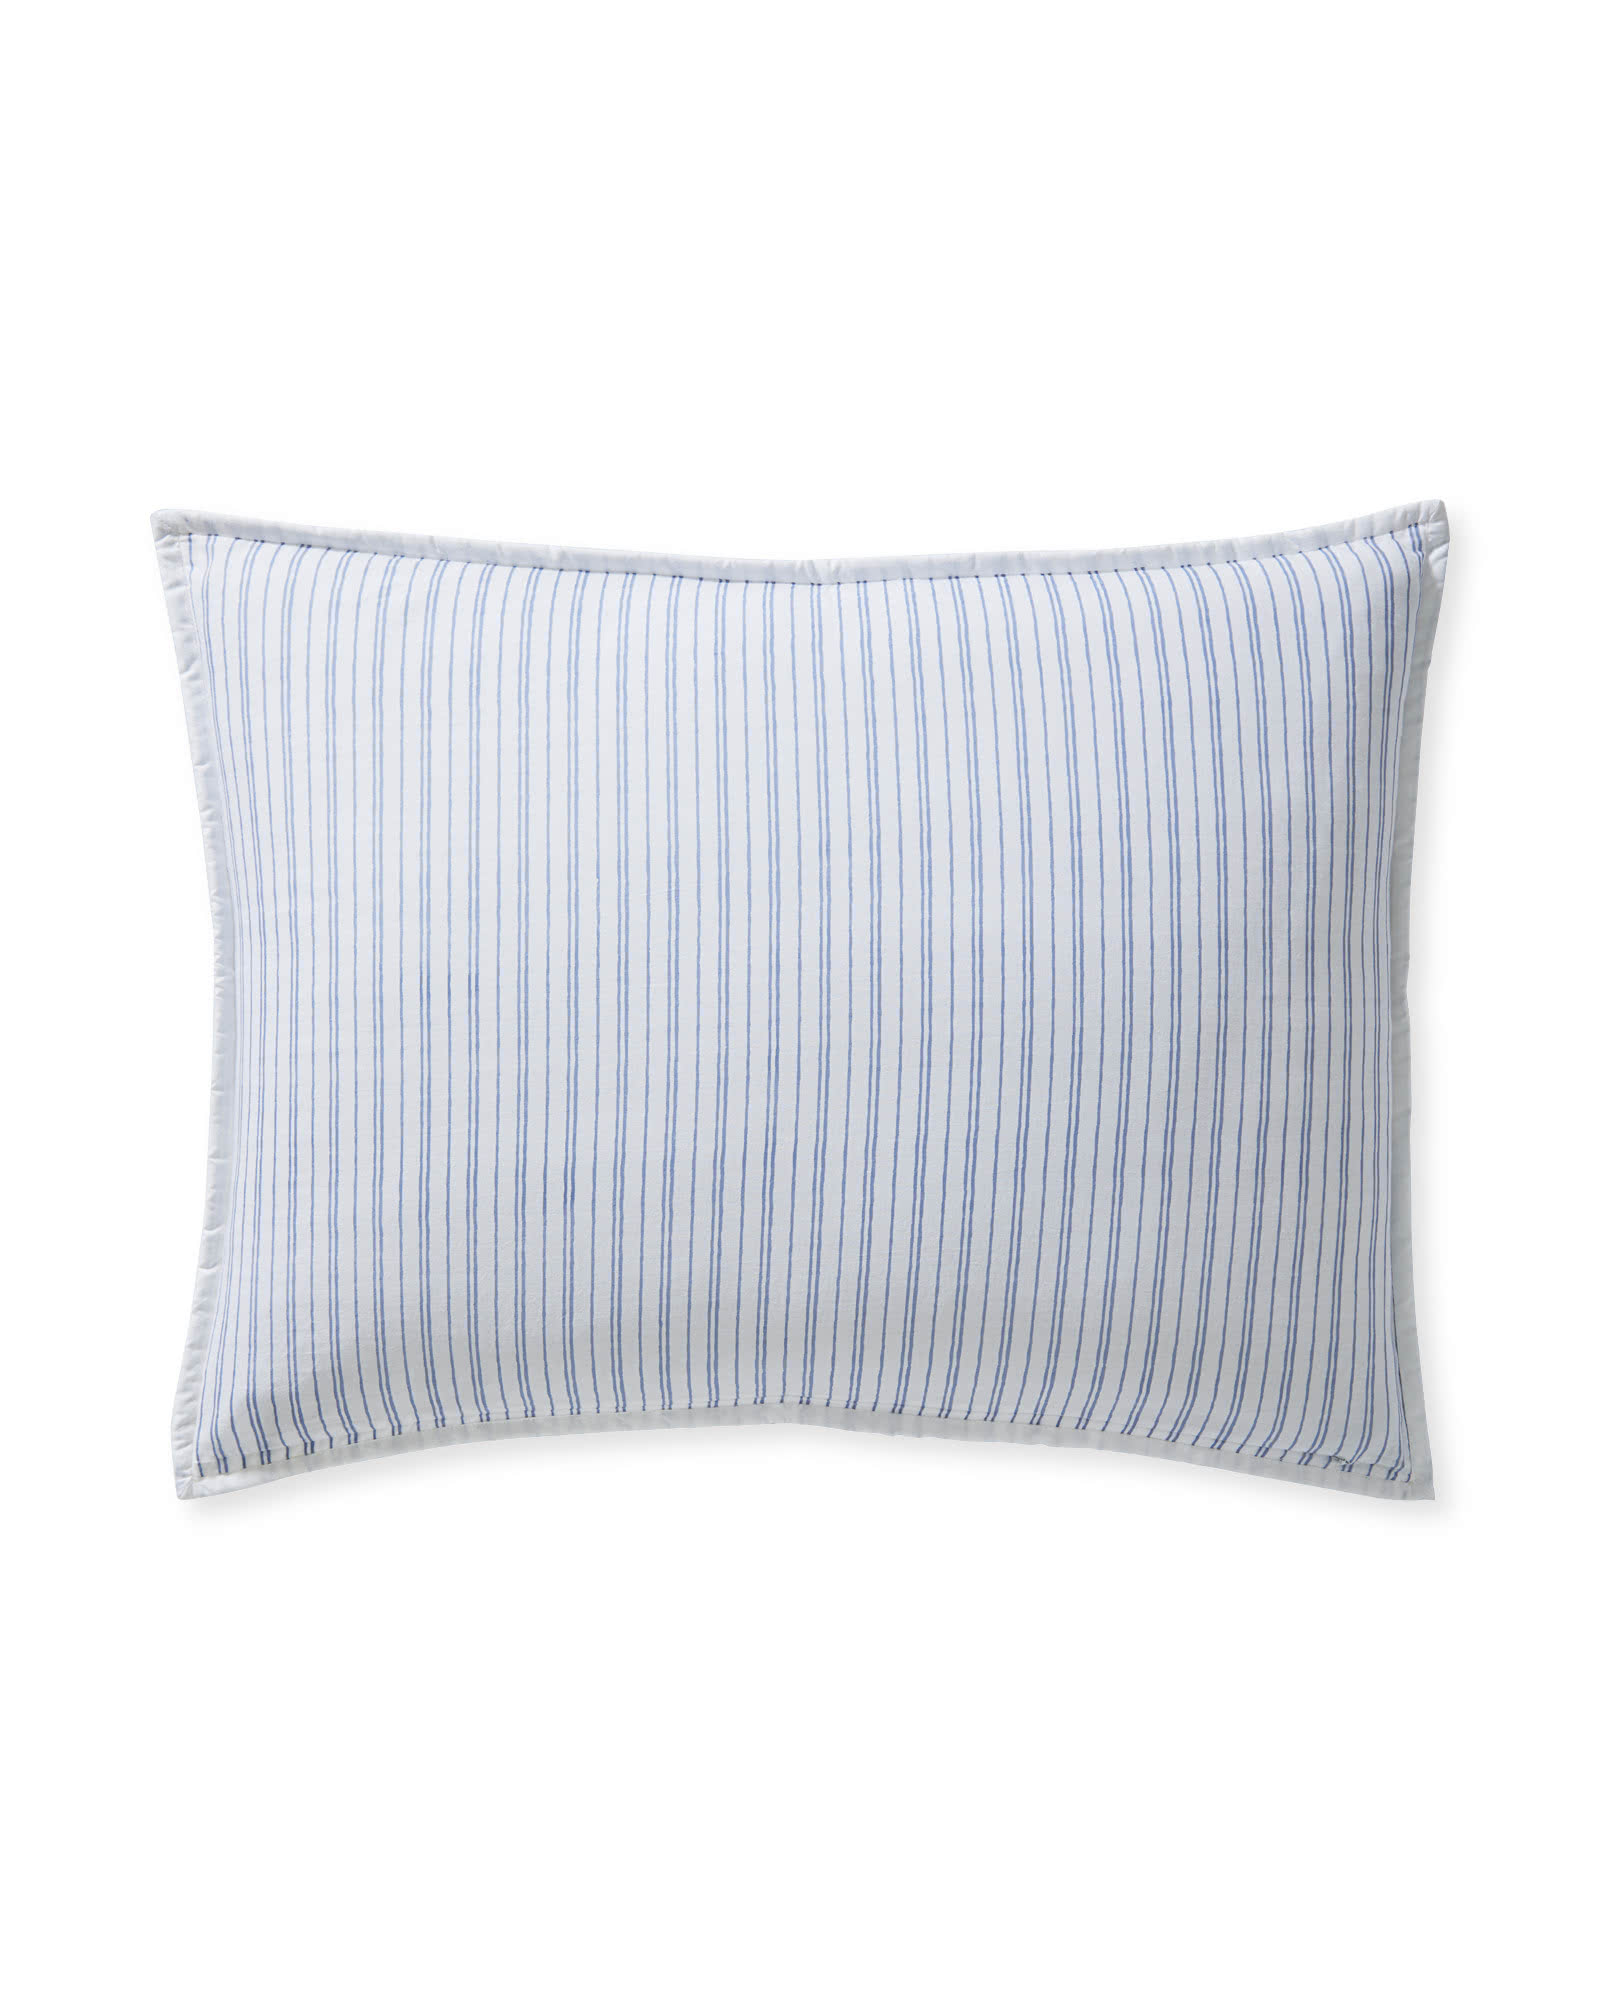 Seaport Quilted Shams